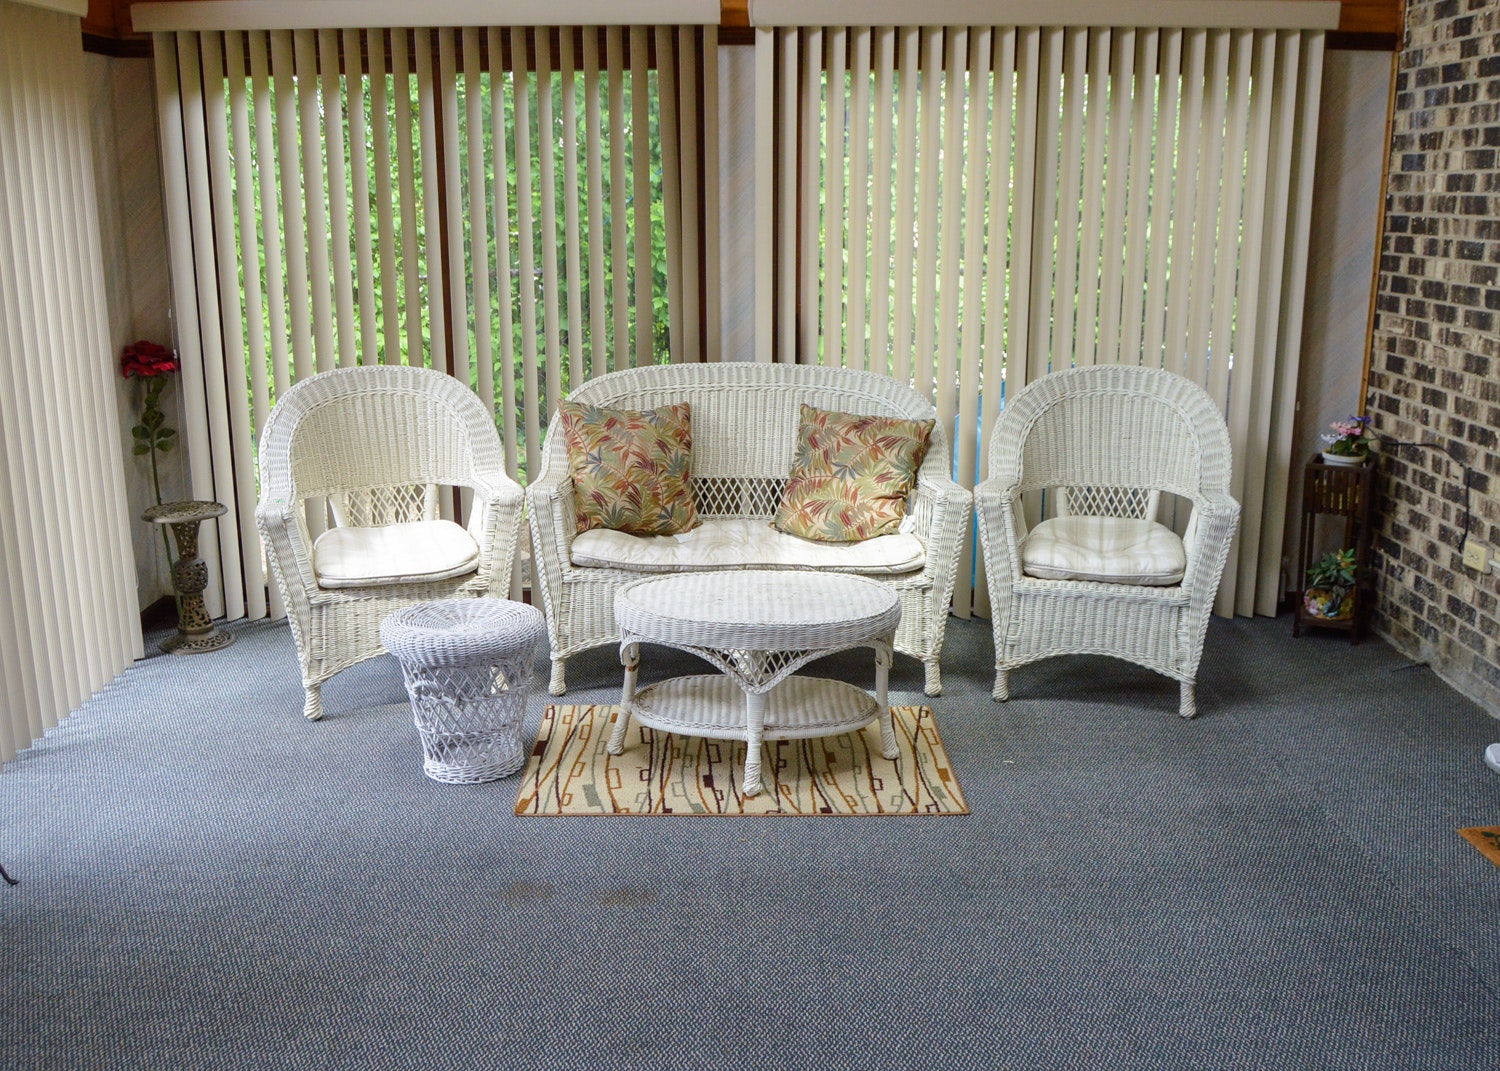 Vintage Reed Woven Patio Furniture Set